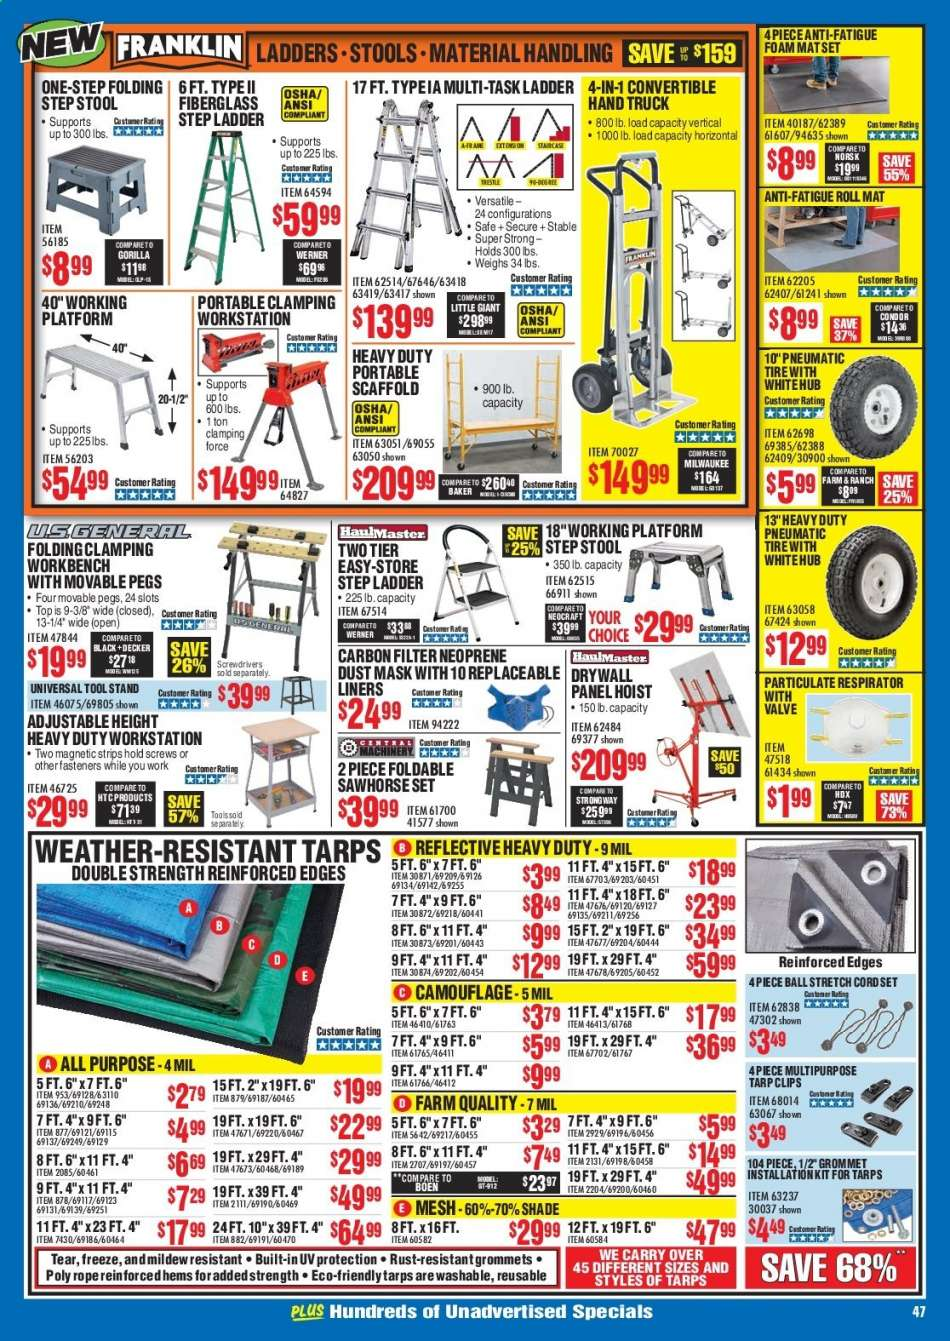 Astounding Harbor Freight Flyer 12 01 2019 12 31 2019 Weekly Ads Us Andrewgaddart Wooden Chair Designs For Living Room Andrewgaddartcom